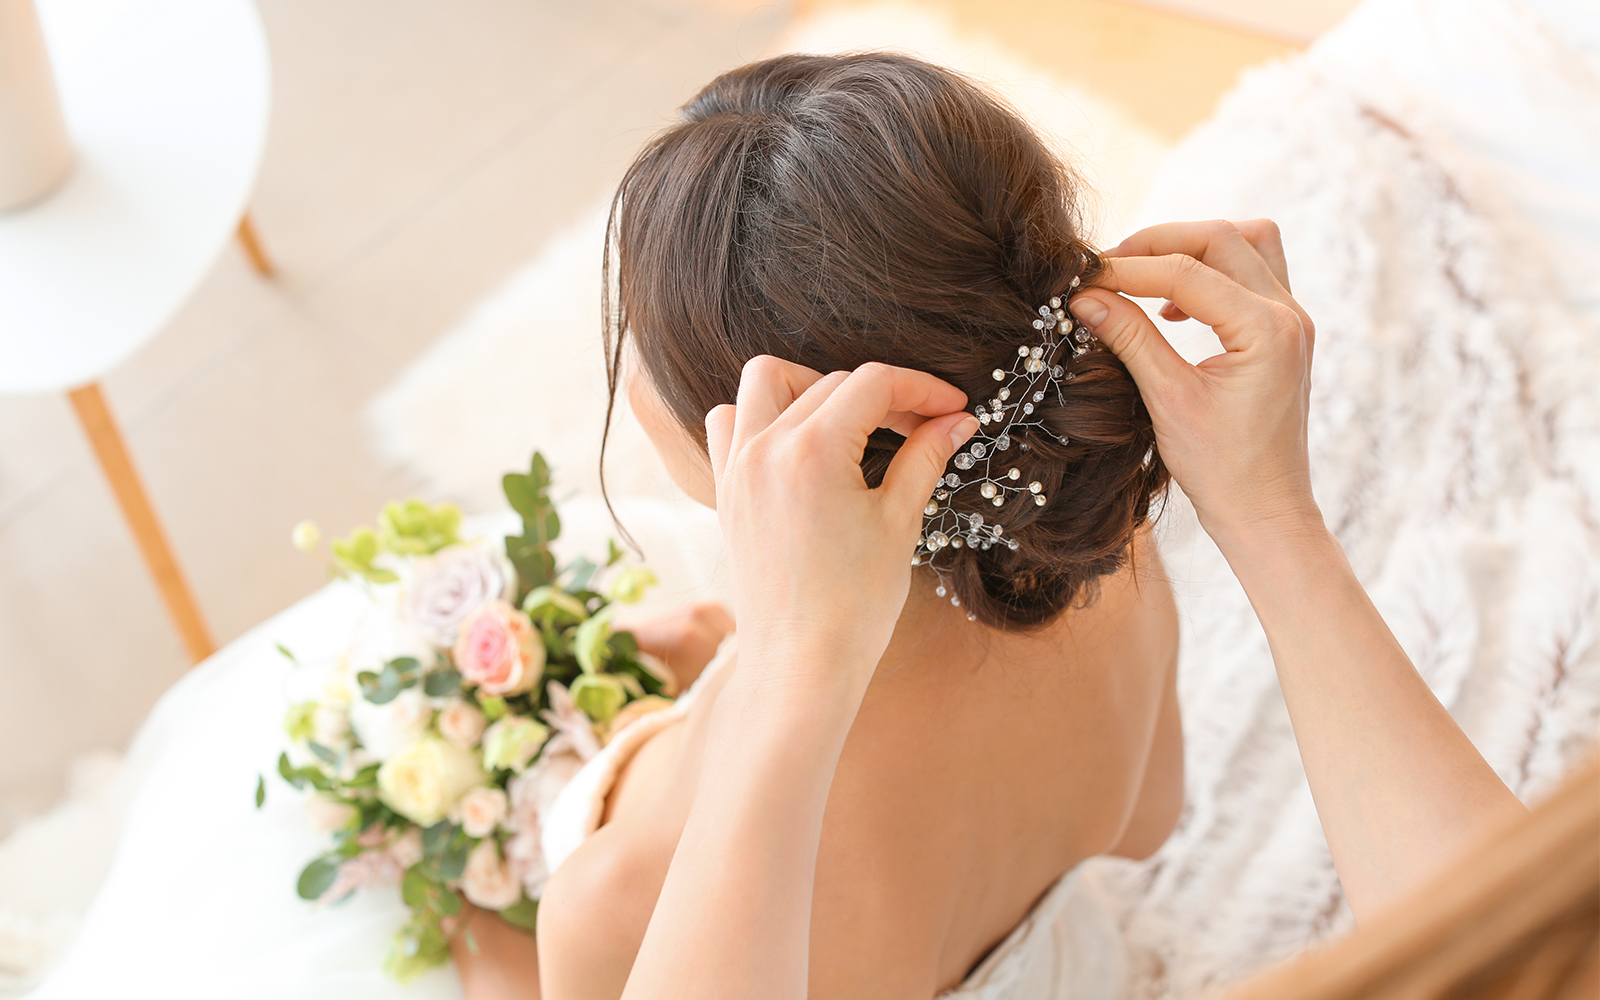 The I Do Hairdo Bridal Hairstyles For Your Wedding